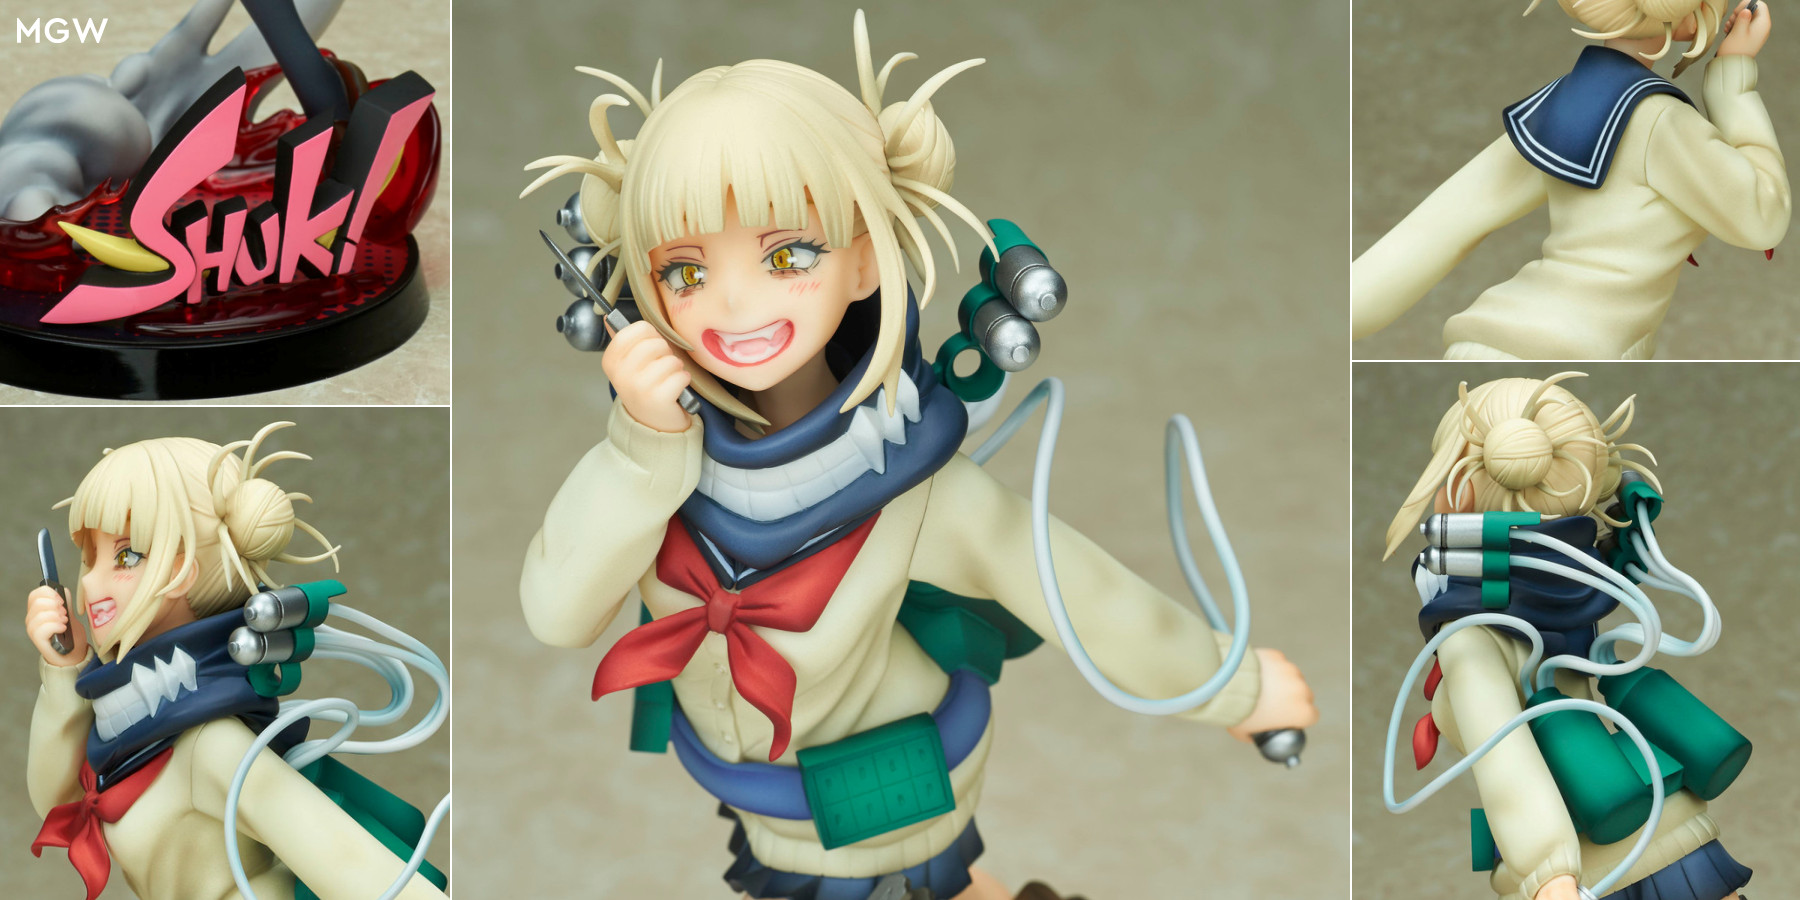 Toga Himiko by BellFine from My Hero Academia